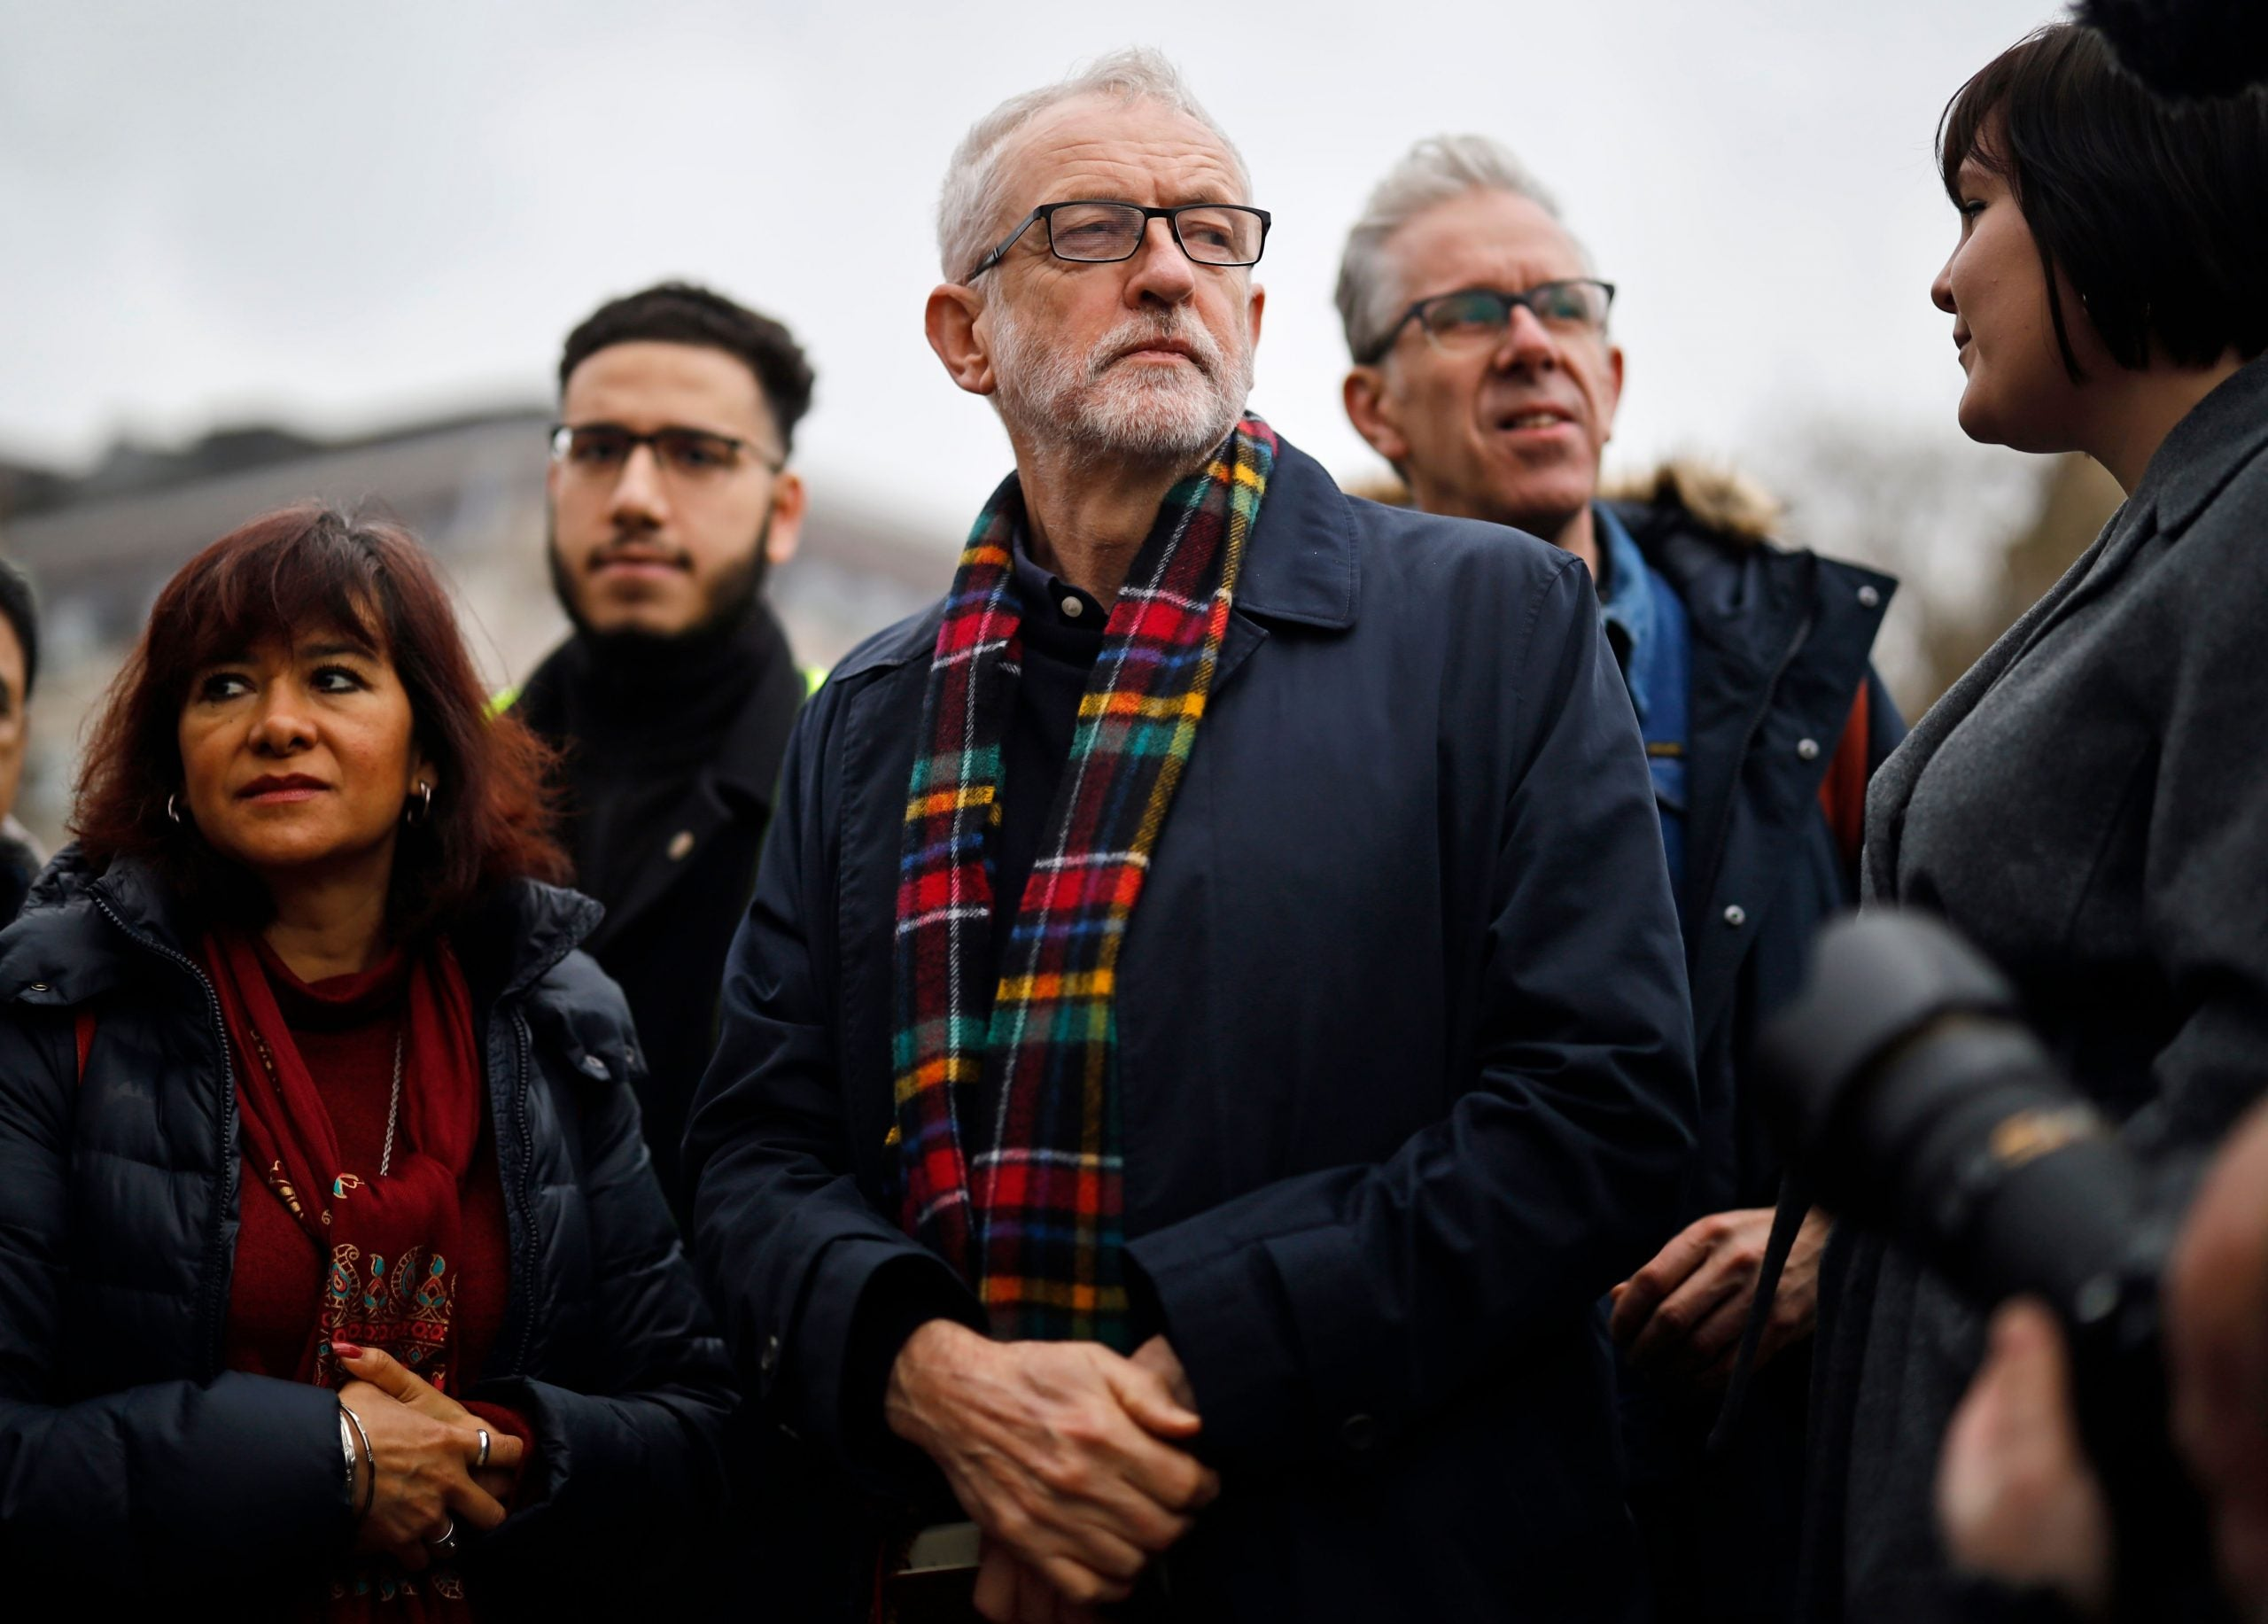 Labour faces a painful reckoning: those who enabled Corbynism can't be trusted with its future